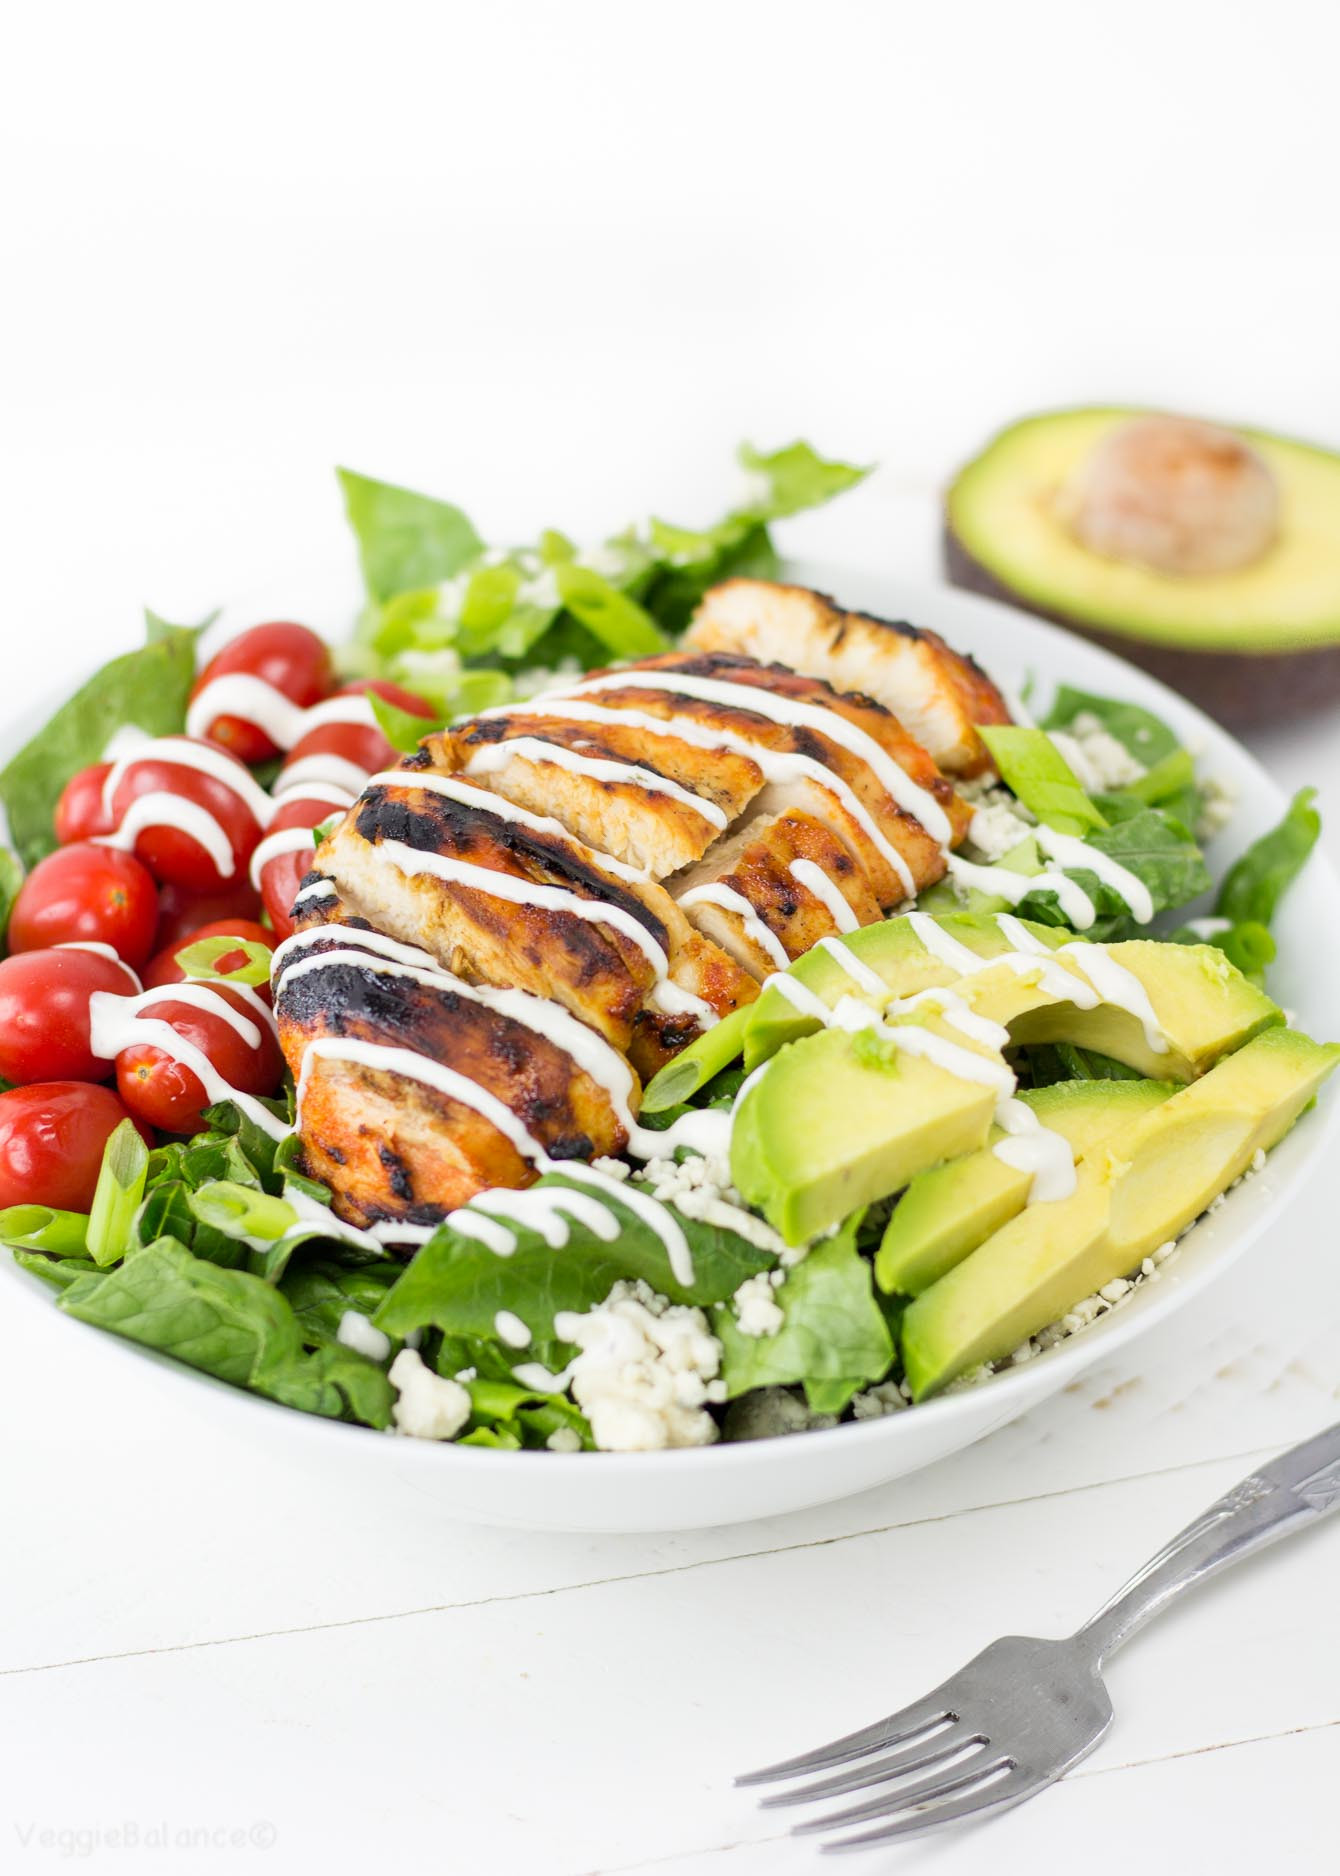 Grilled Chicken Salad Recipes  Grilled Buffalo Chicken Salad recipe with Easy Ranch